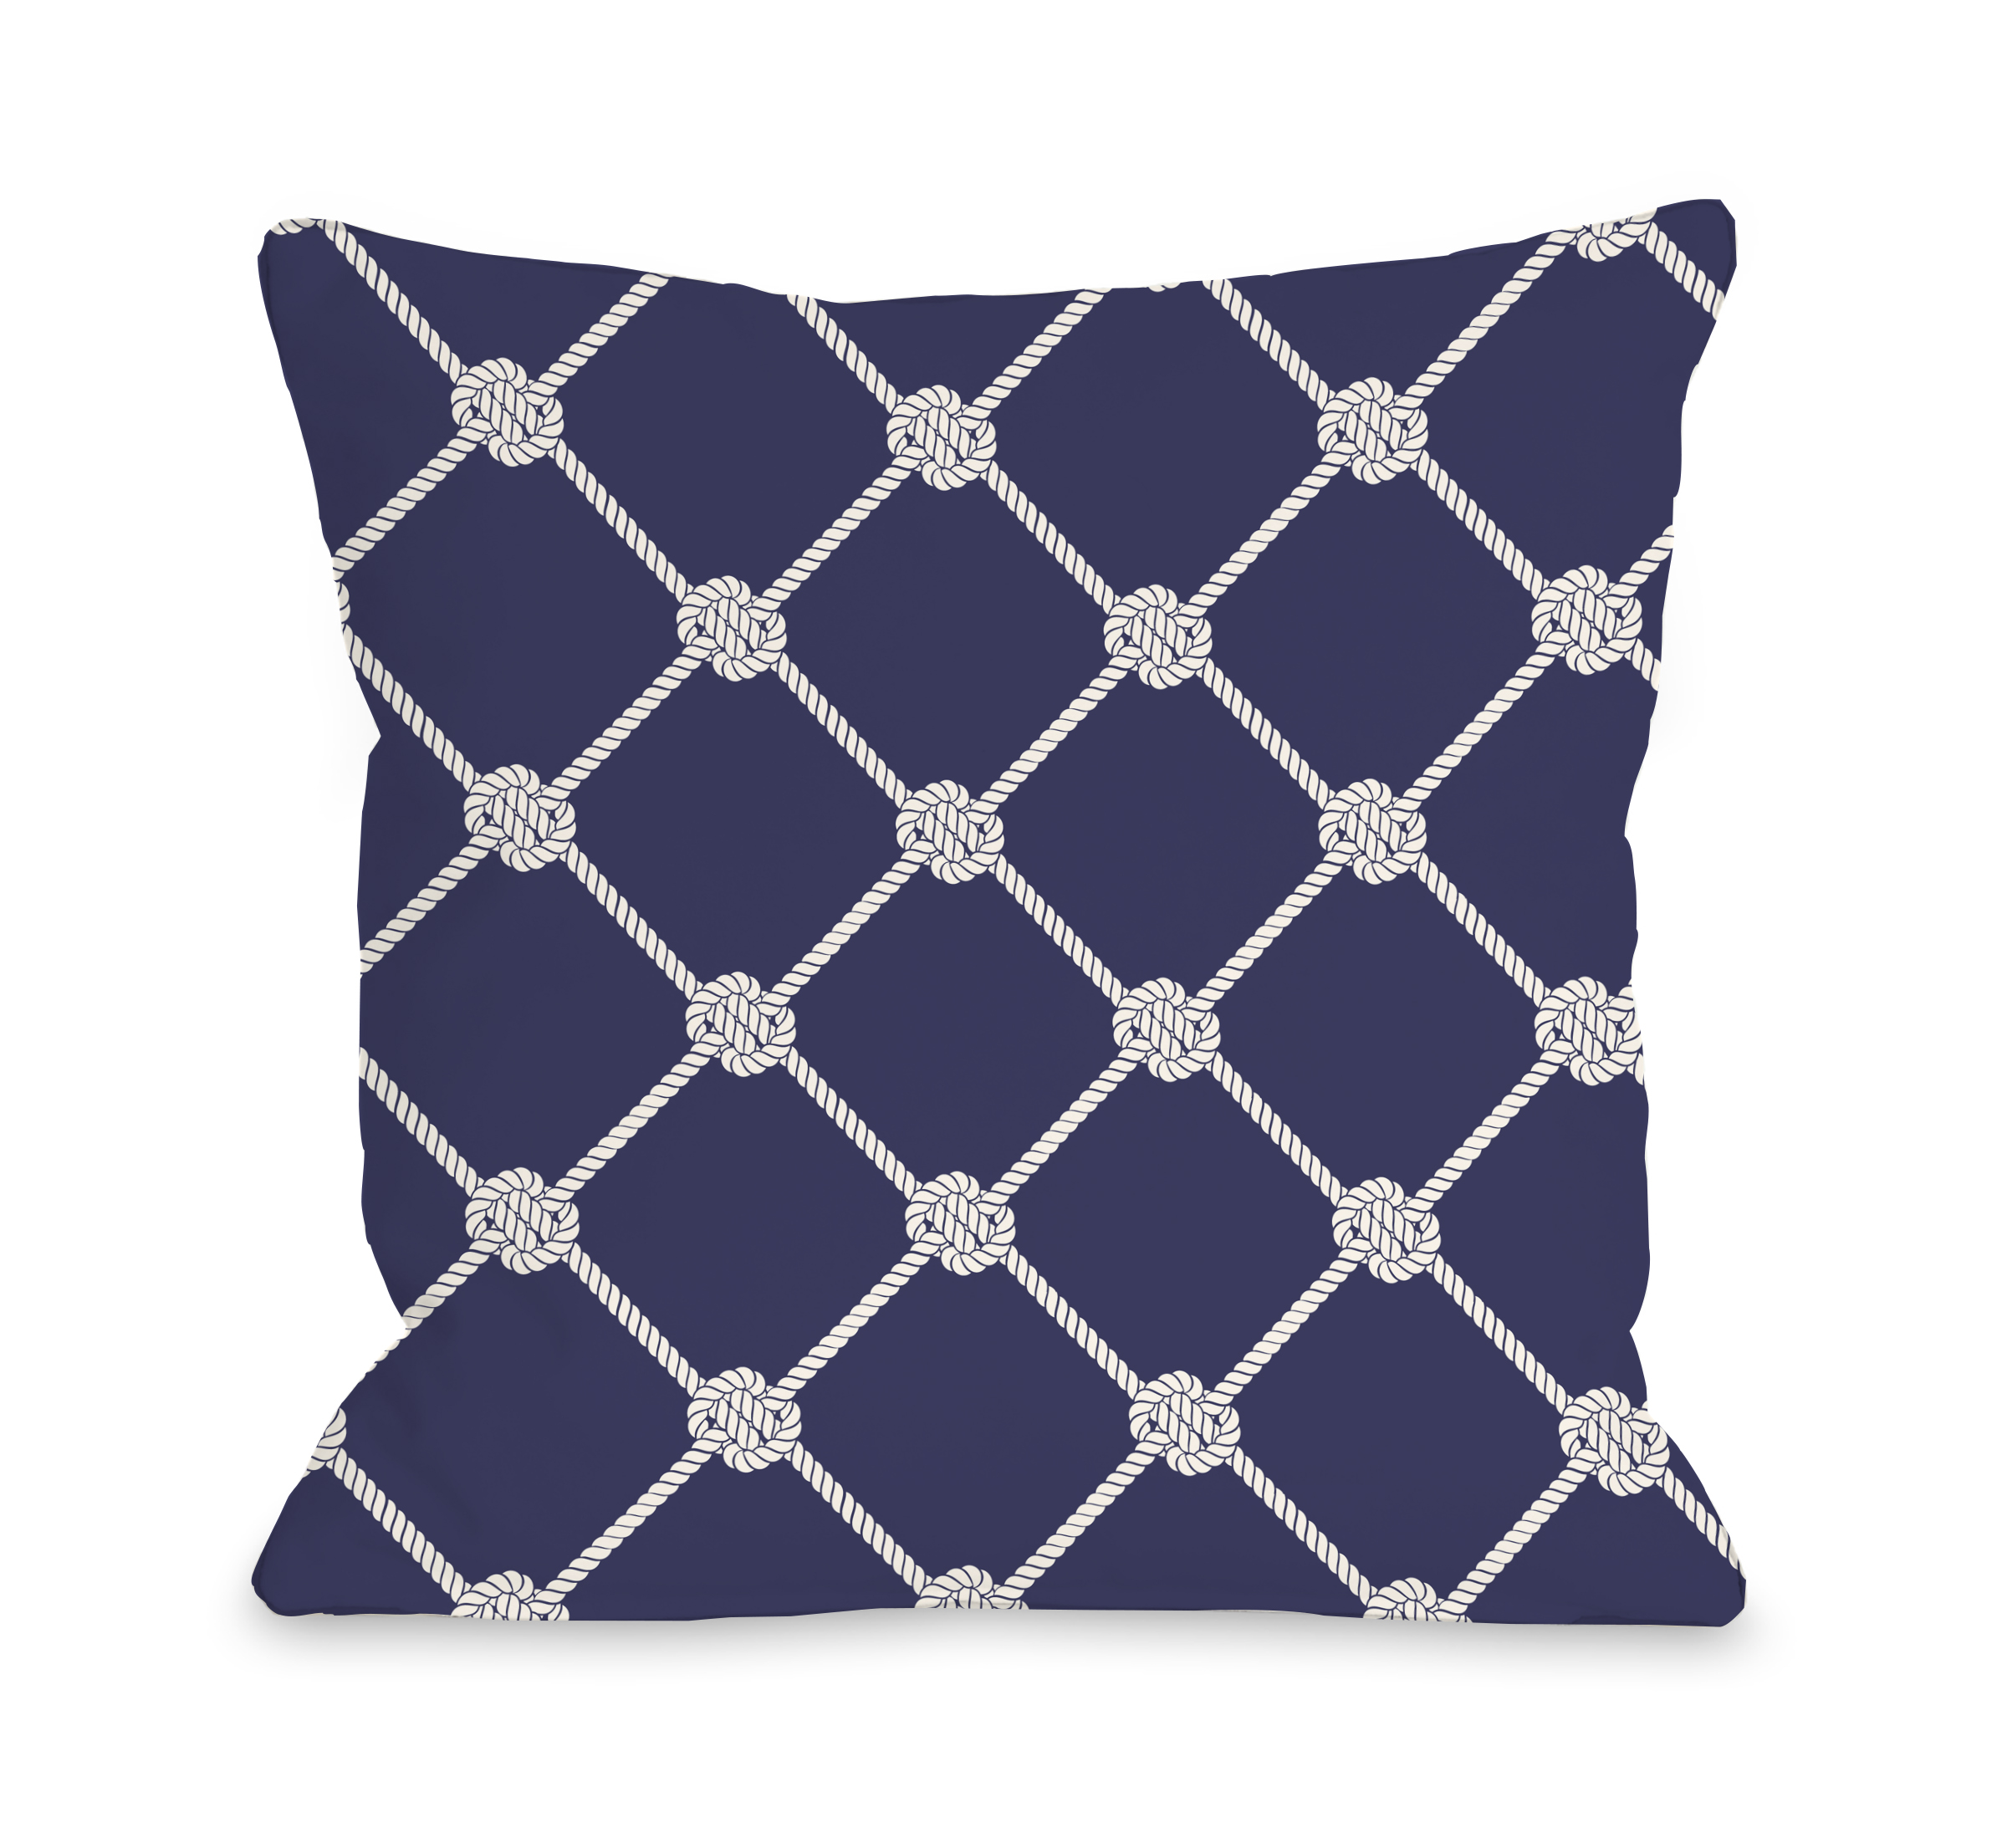 Nautical Rope Pattern - Navy 18x18 Pillow by OBC